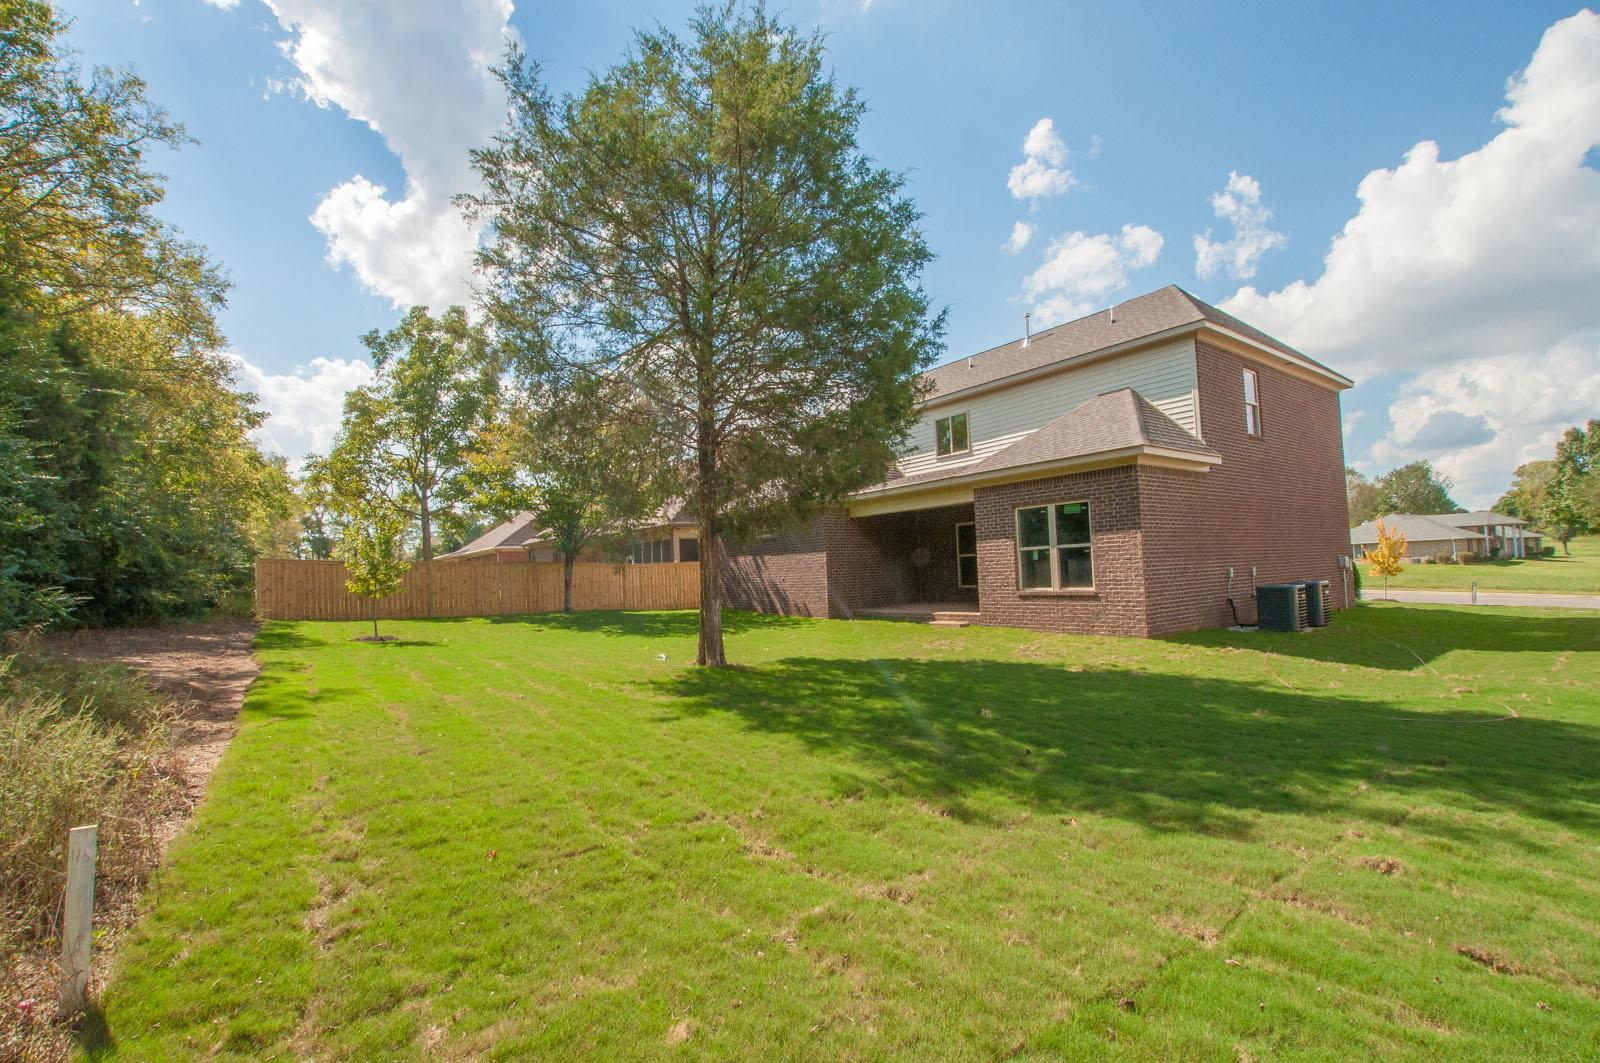 3110 EARHART RD. LOT # 42, Hermitage, TN 37076 - Hermitage, TN real estate listing